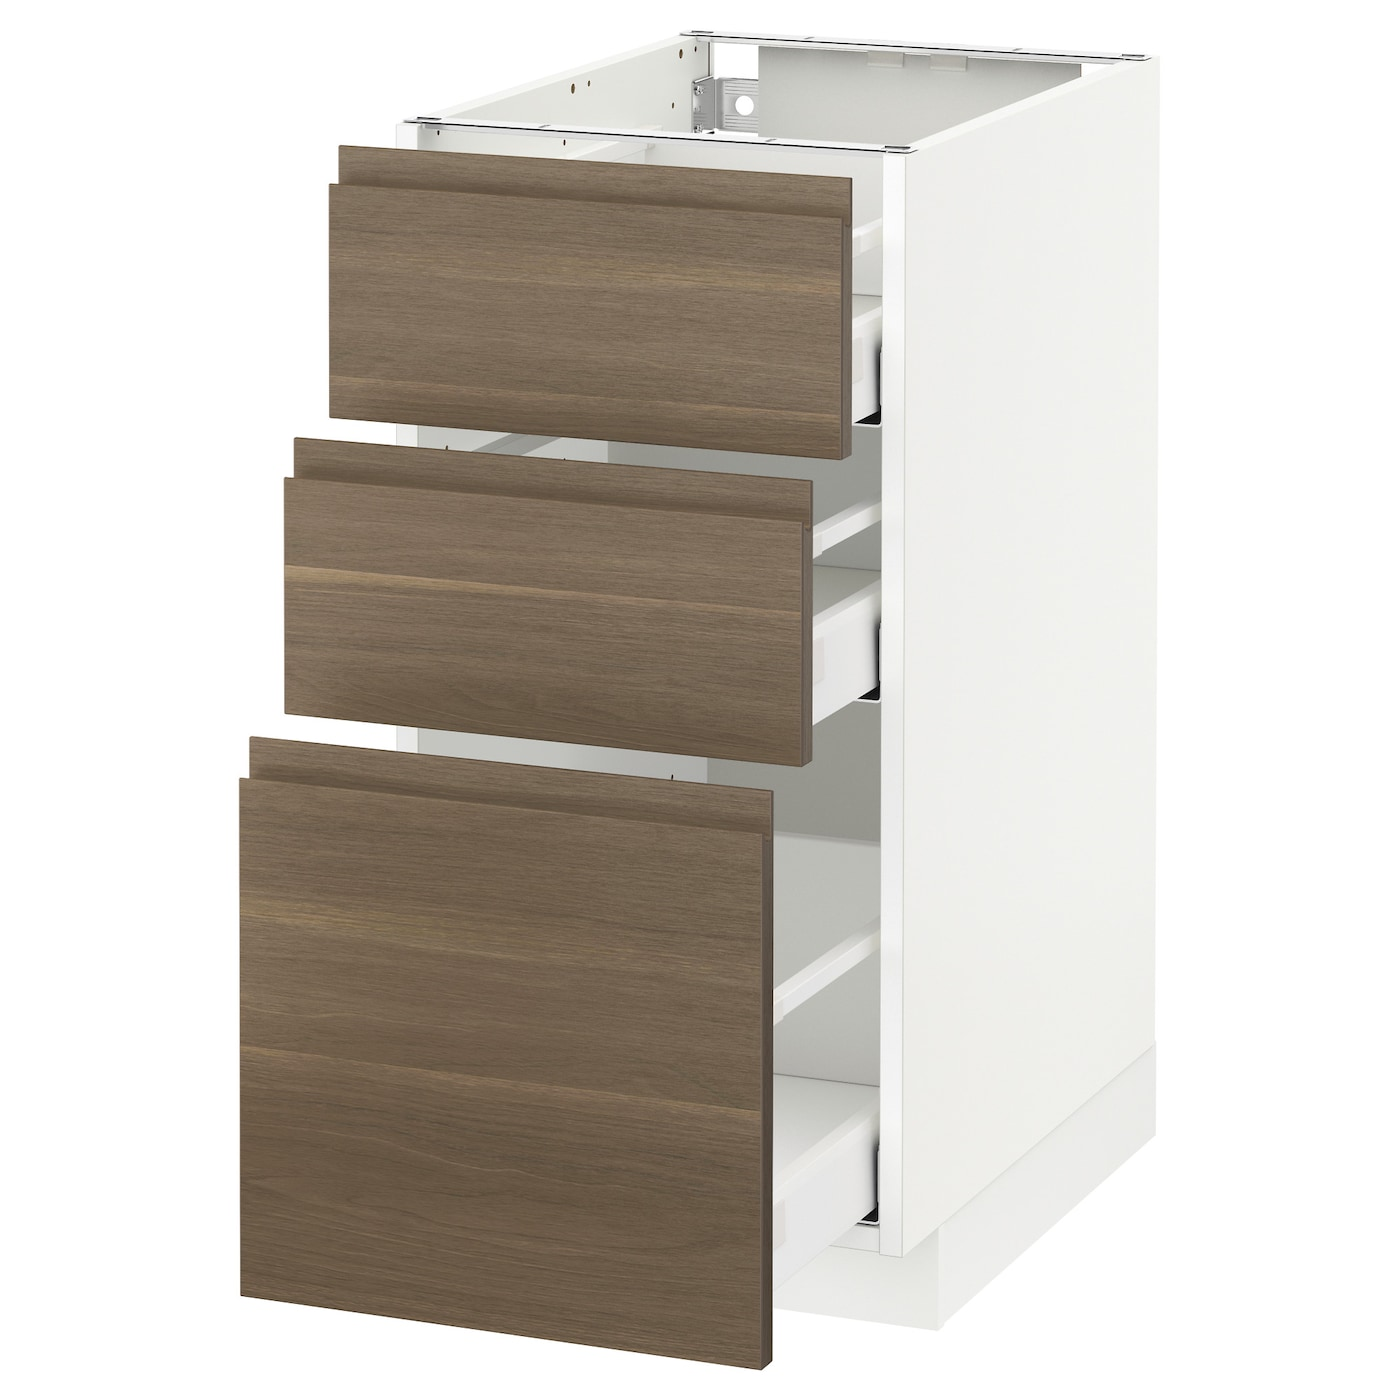 metod maximera base cabinet with 3 drawers white voxtorp walnut 40 x 60 cm ikea. Black Bedroom Furniture Sets. Home Design Ideas